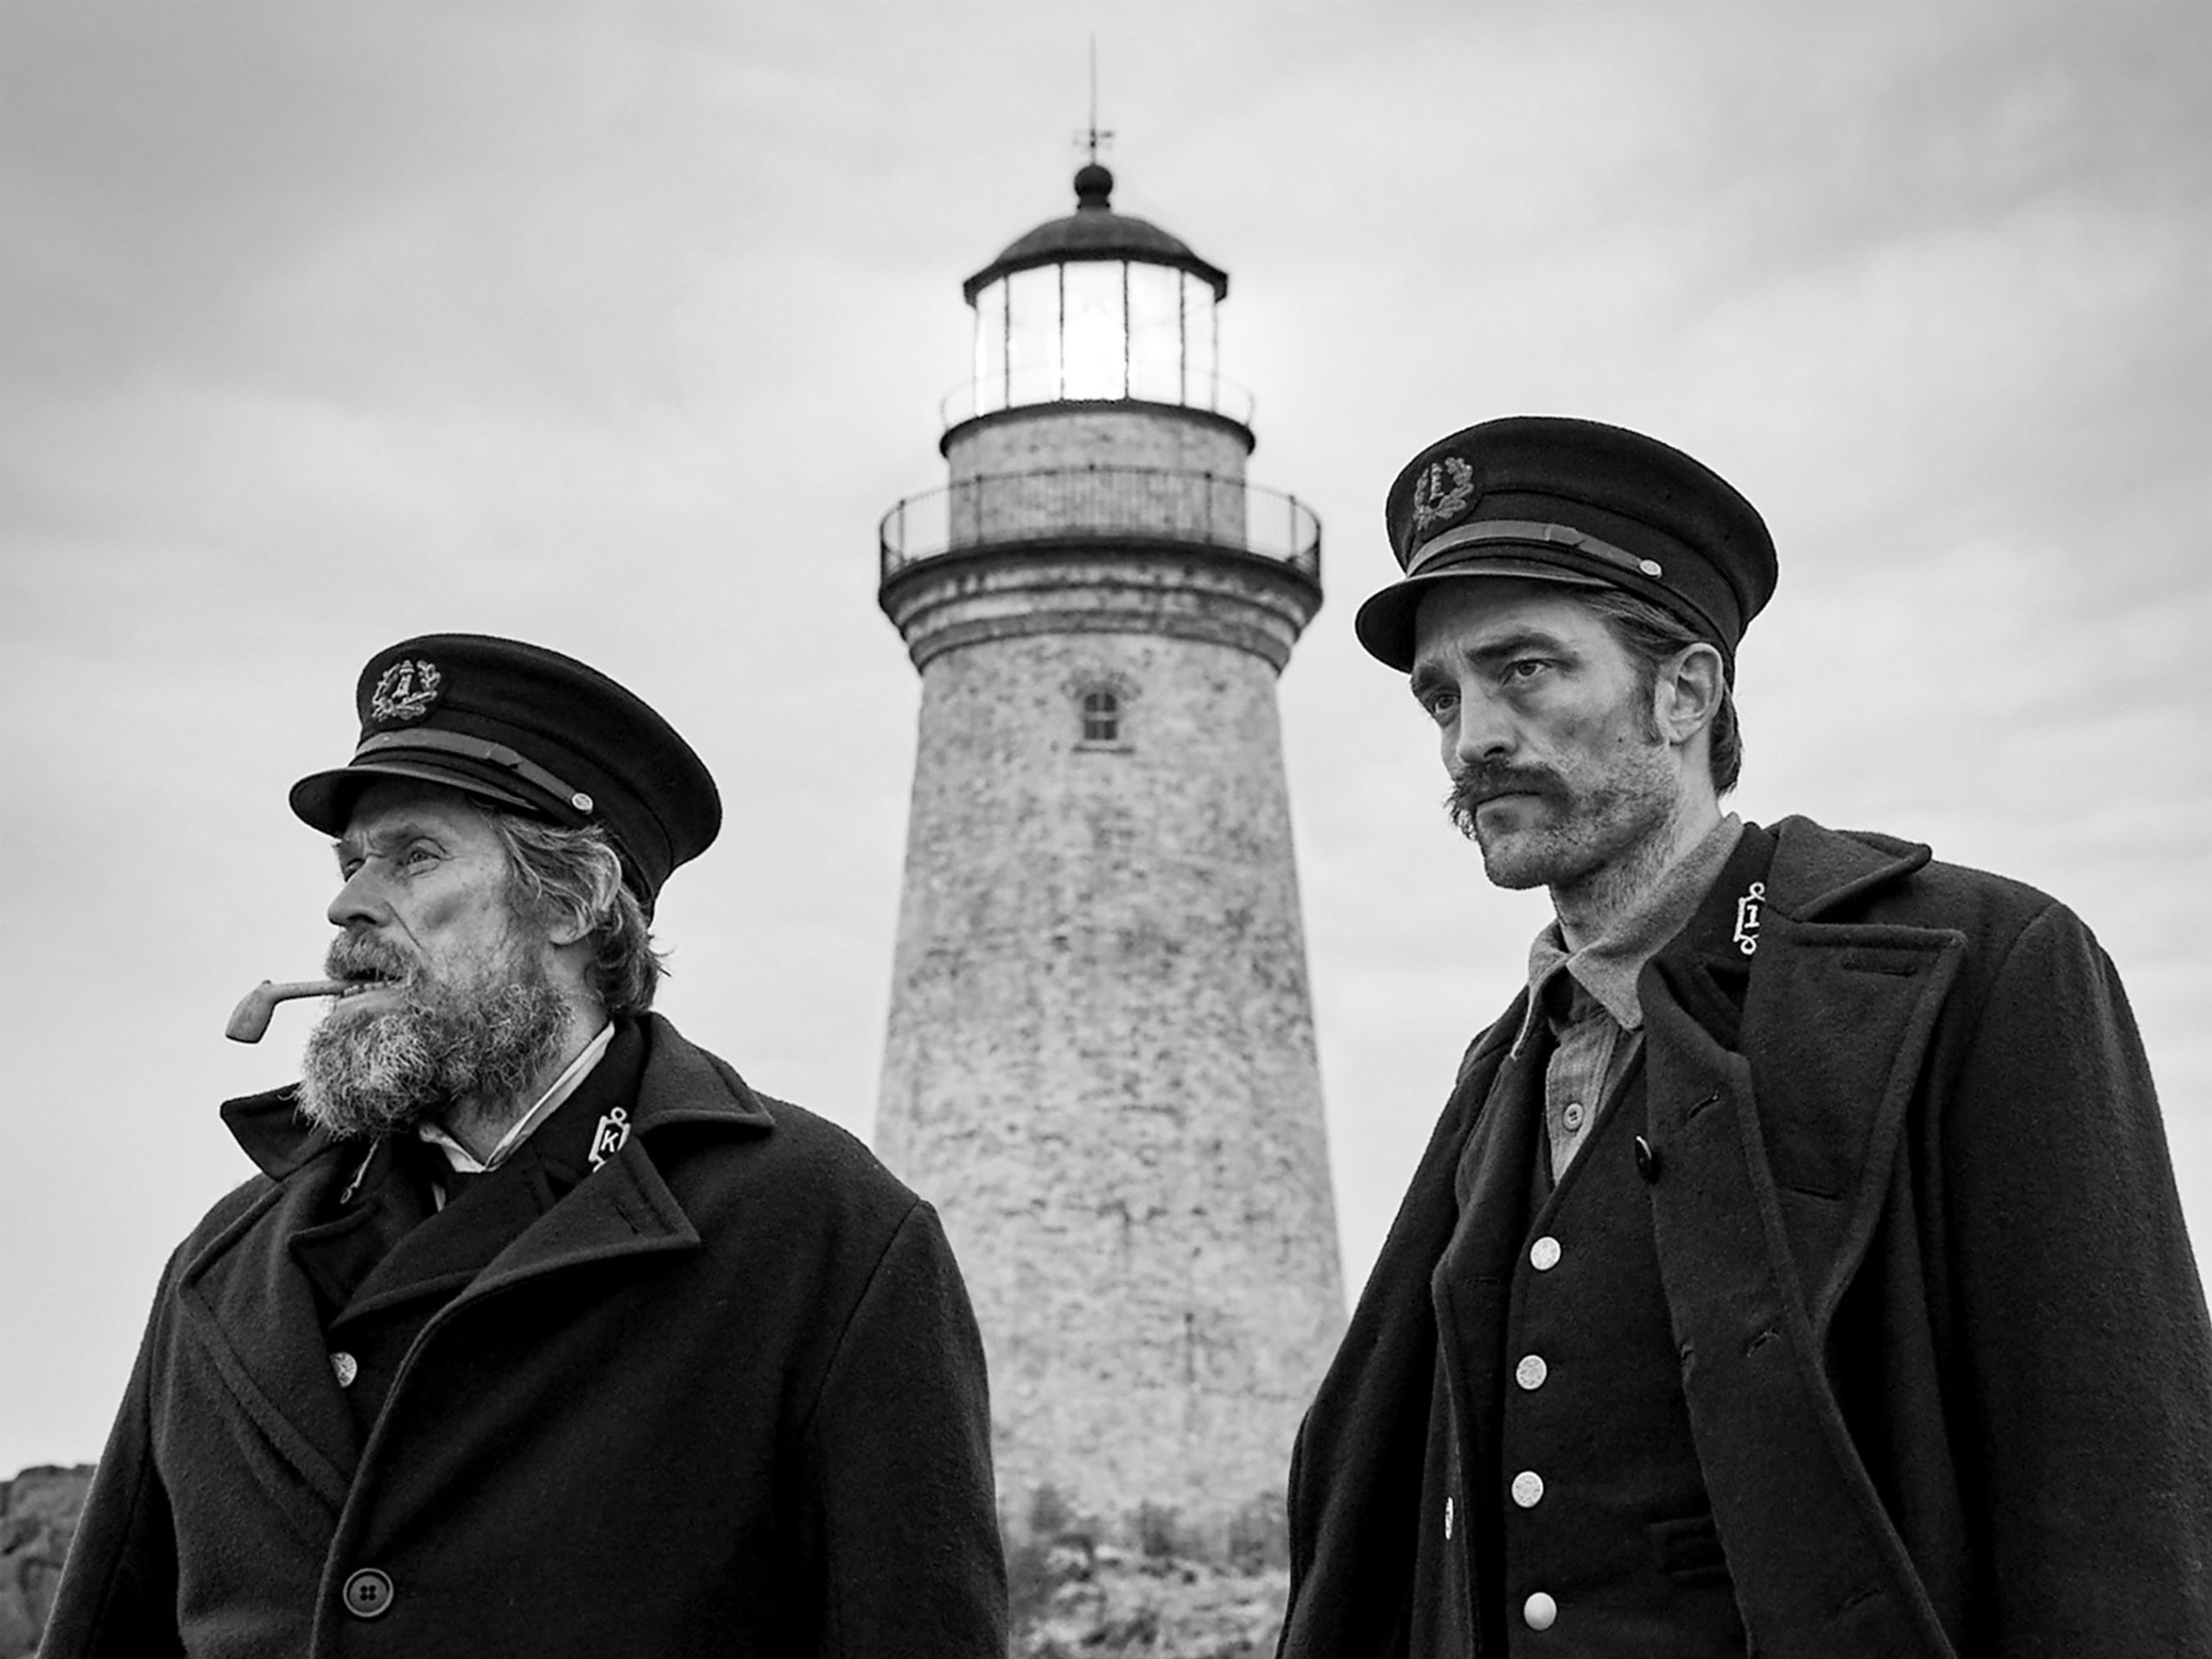 ROBERT PATTINSON AND WILLEM DAFOE TO PRESENT LOCKDOWN VERSION OF THE LIGHTHOUSE